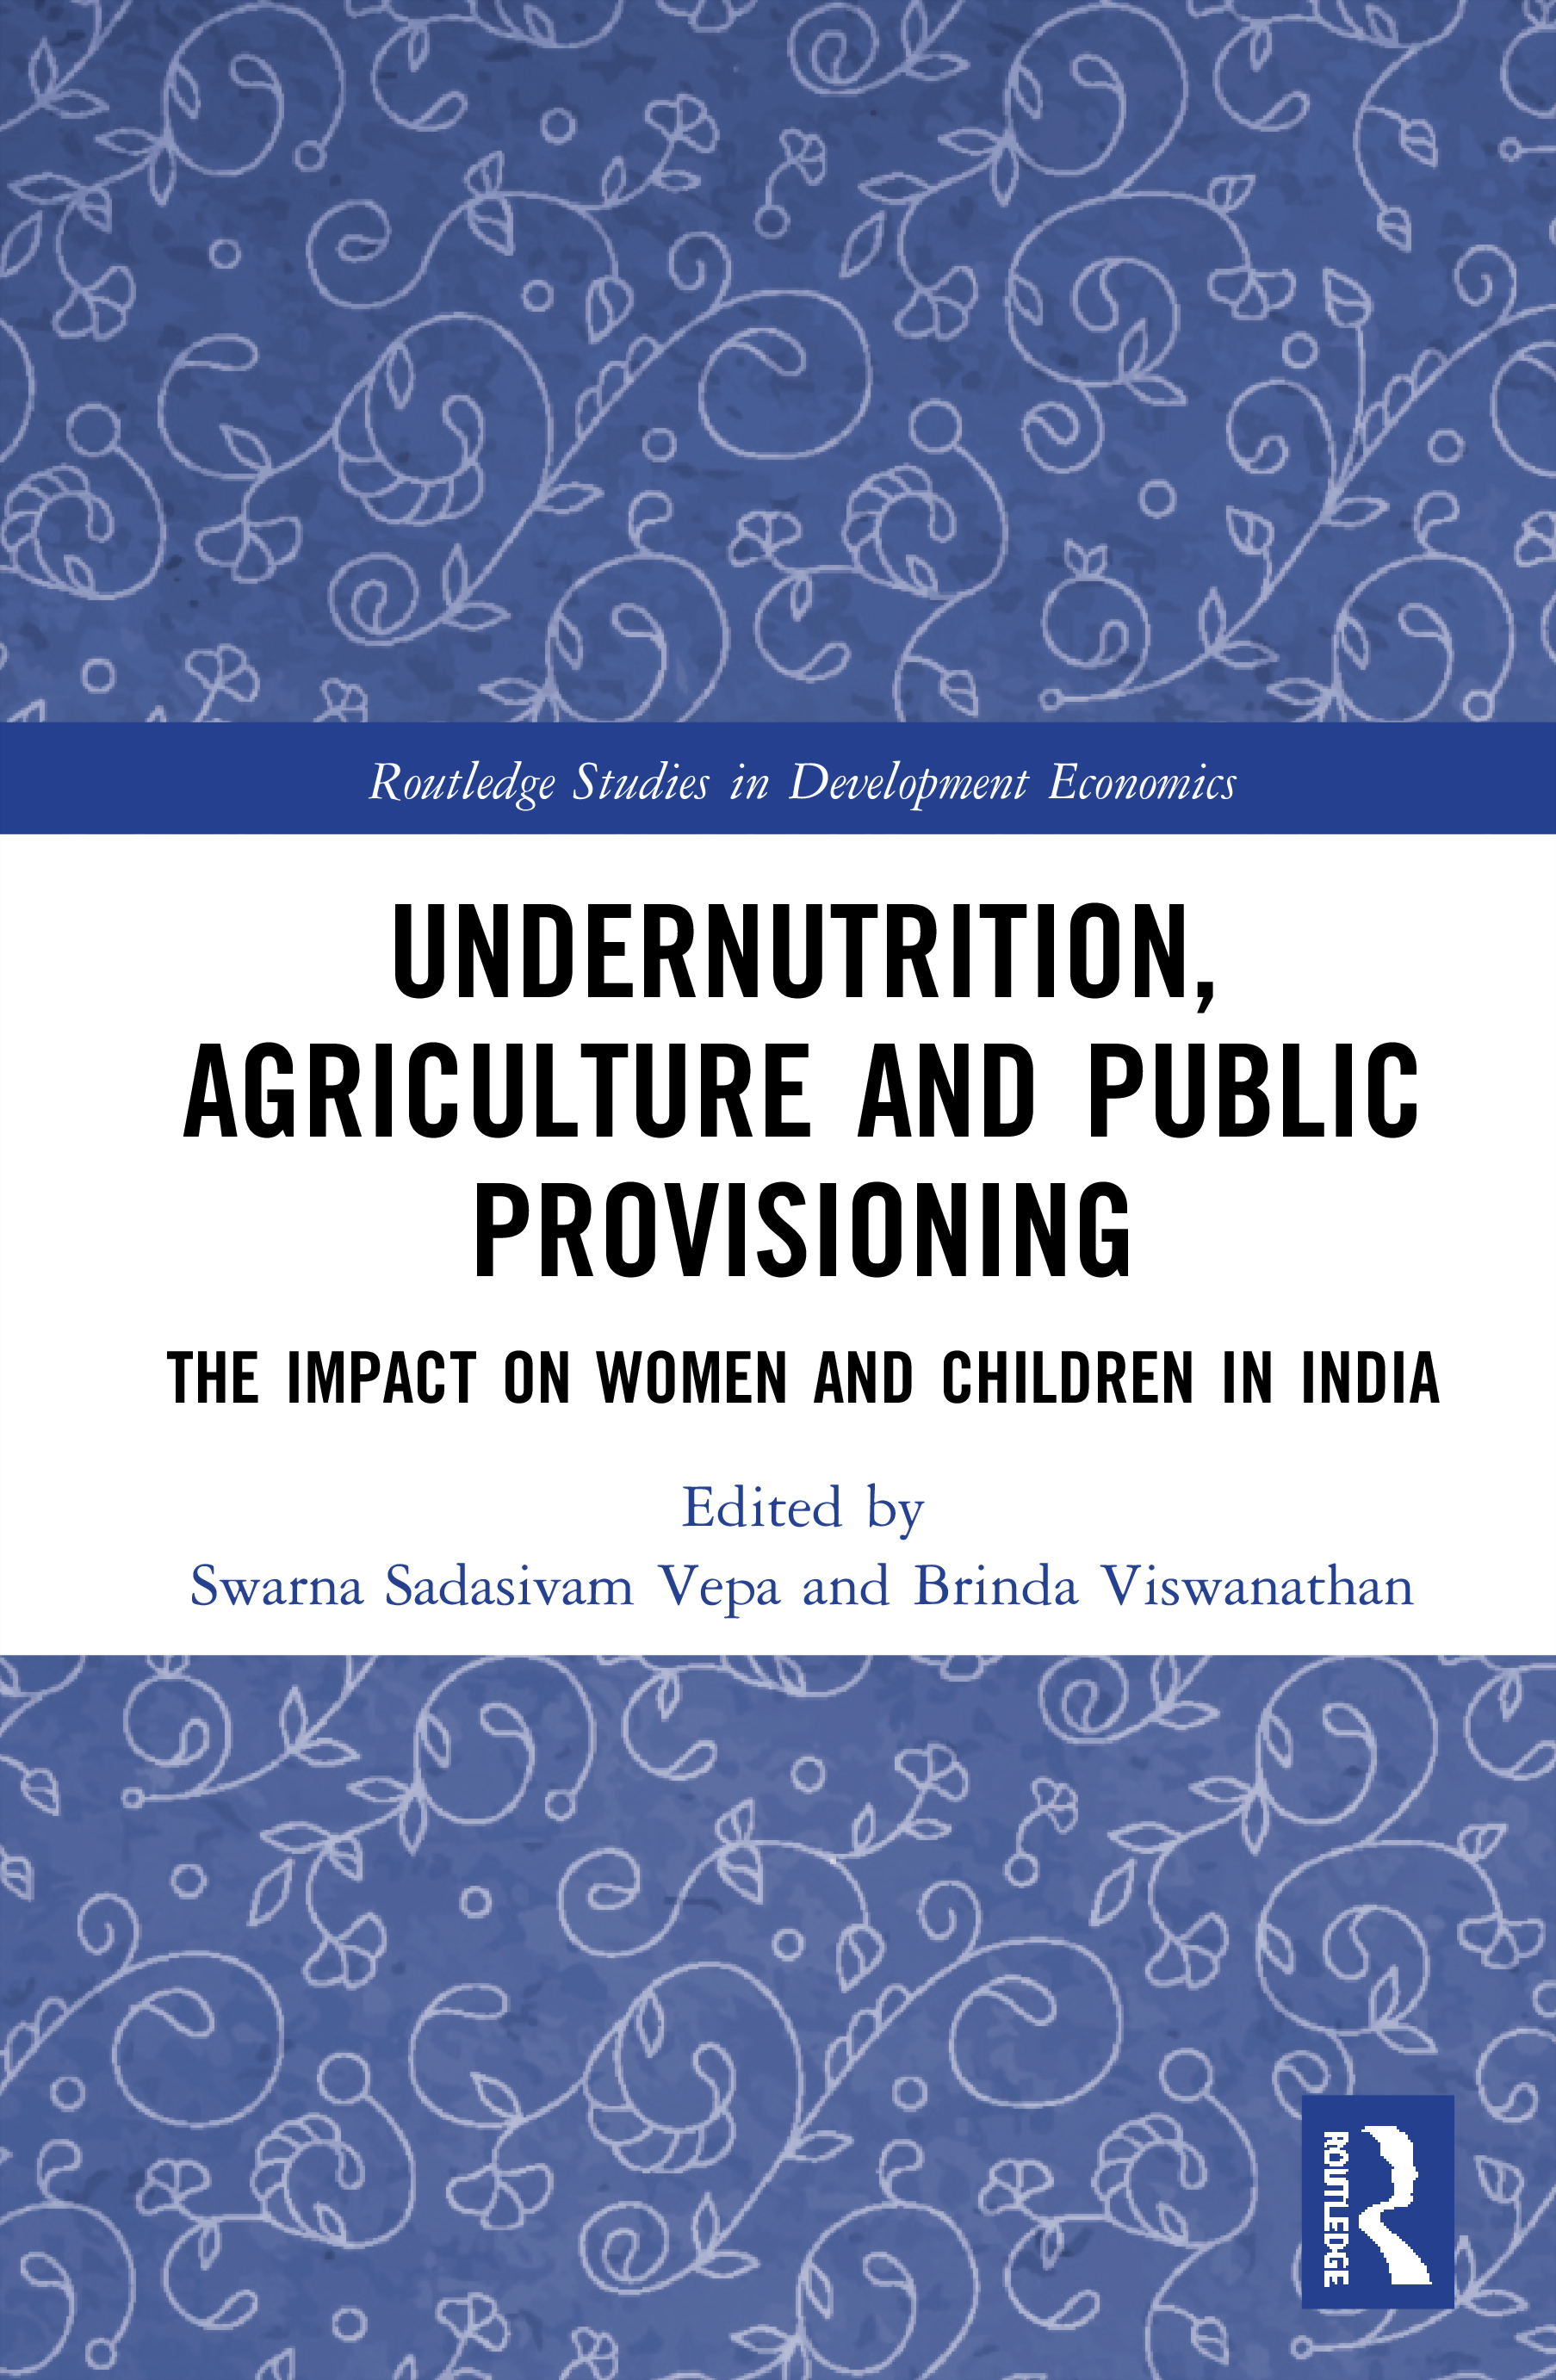 Undernutrition, Agriculture and Public Provisioning: The Impact on Women and Children in India book cover